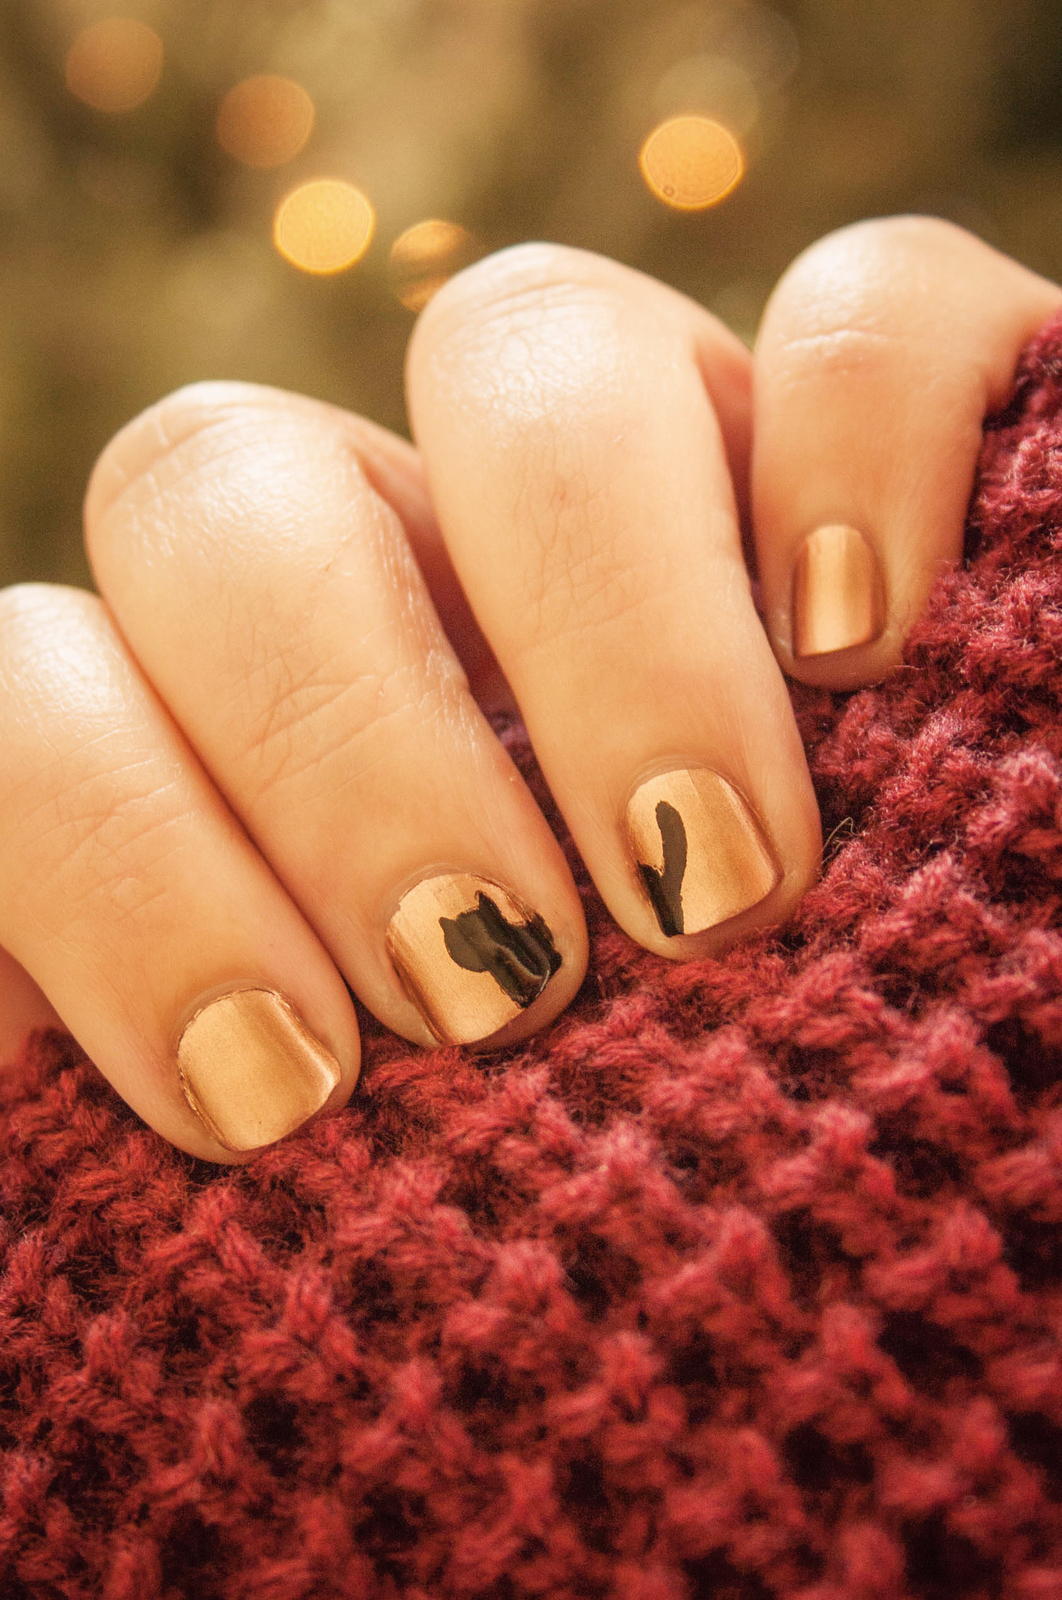 Cat Nails · How To Paint An Animal Nail · Beauty, Nail